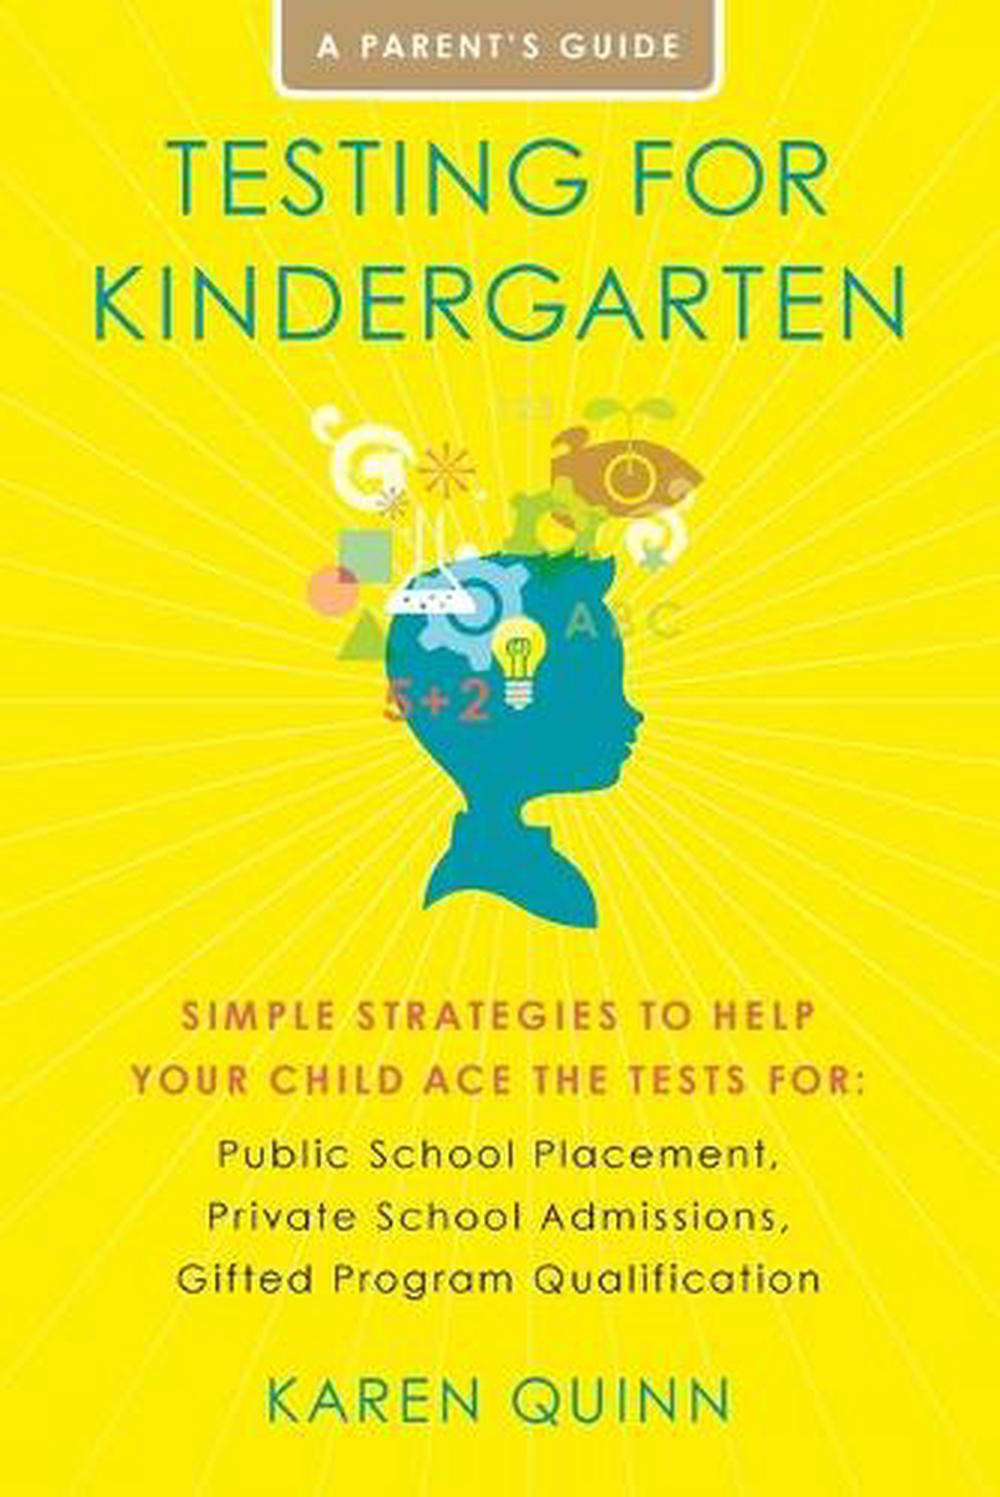 Testing for Kindergarten: Simple Strategies to Help Your Child Ace the Tests For: Public School Placement, Private School Admissions, Gifted Pro